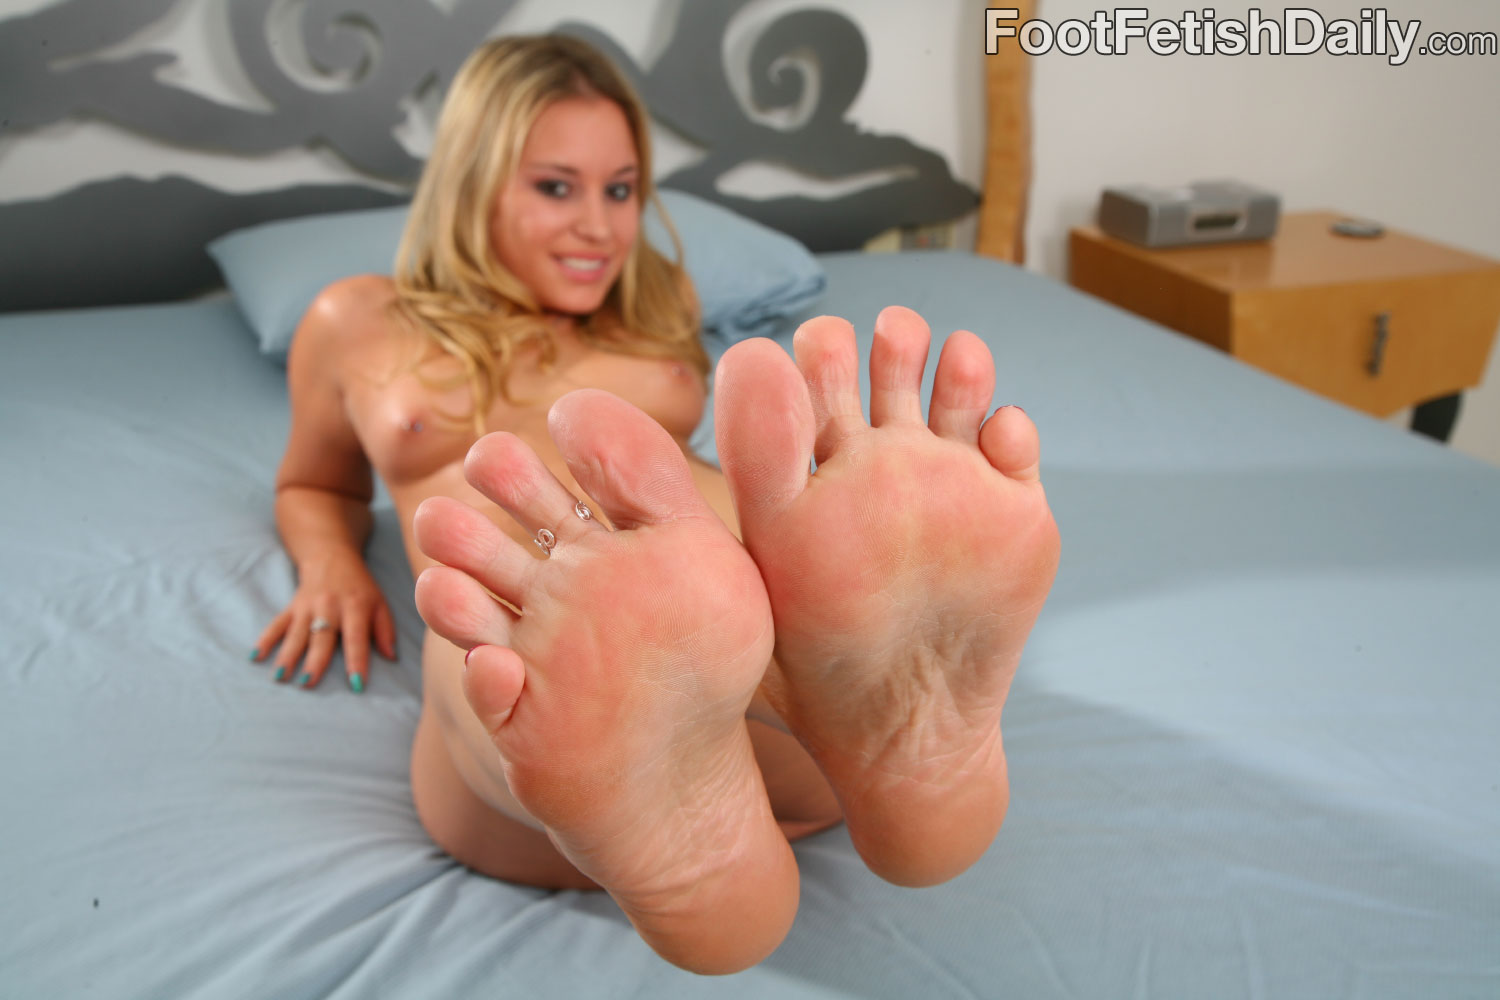 top foot fetish porn sites jpg 1500x1000